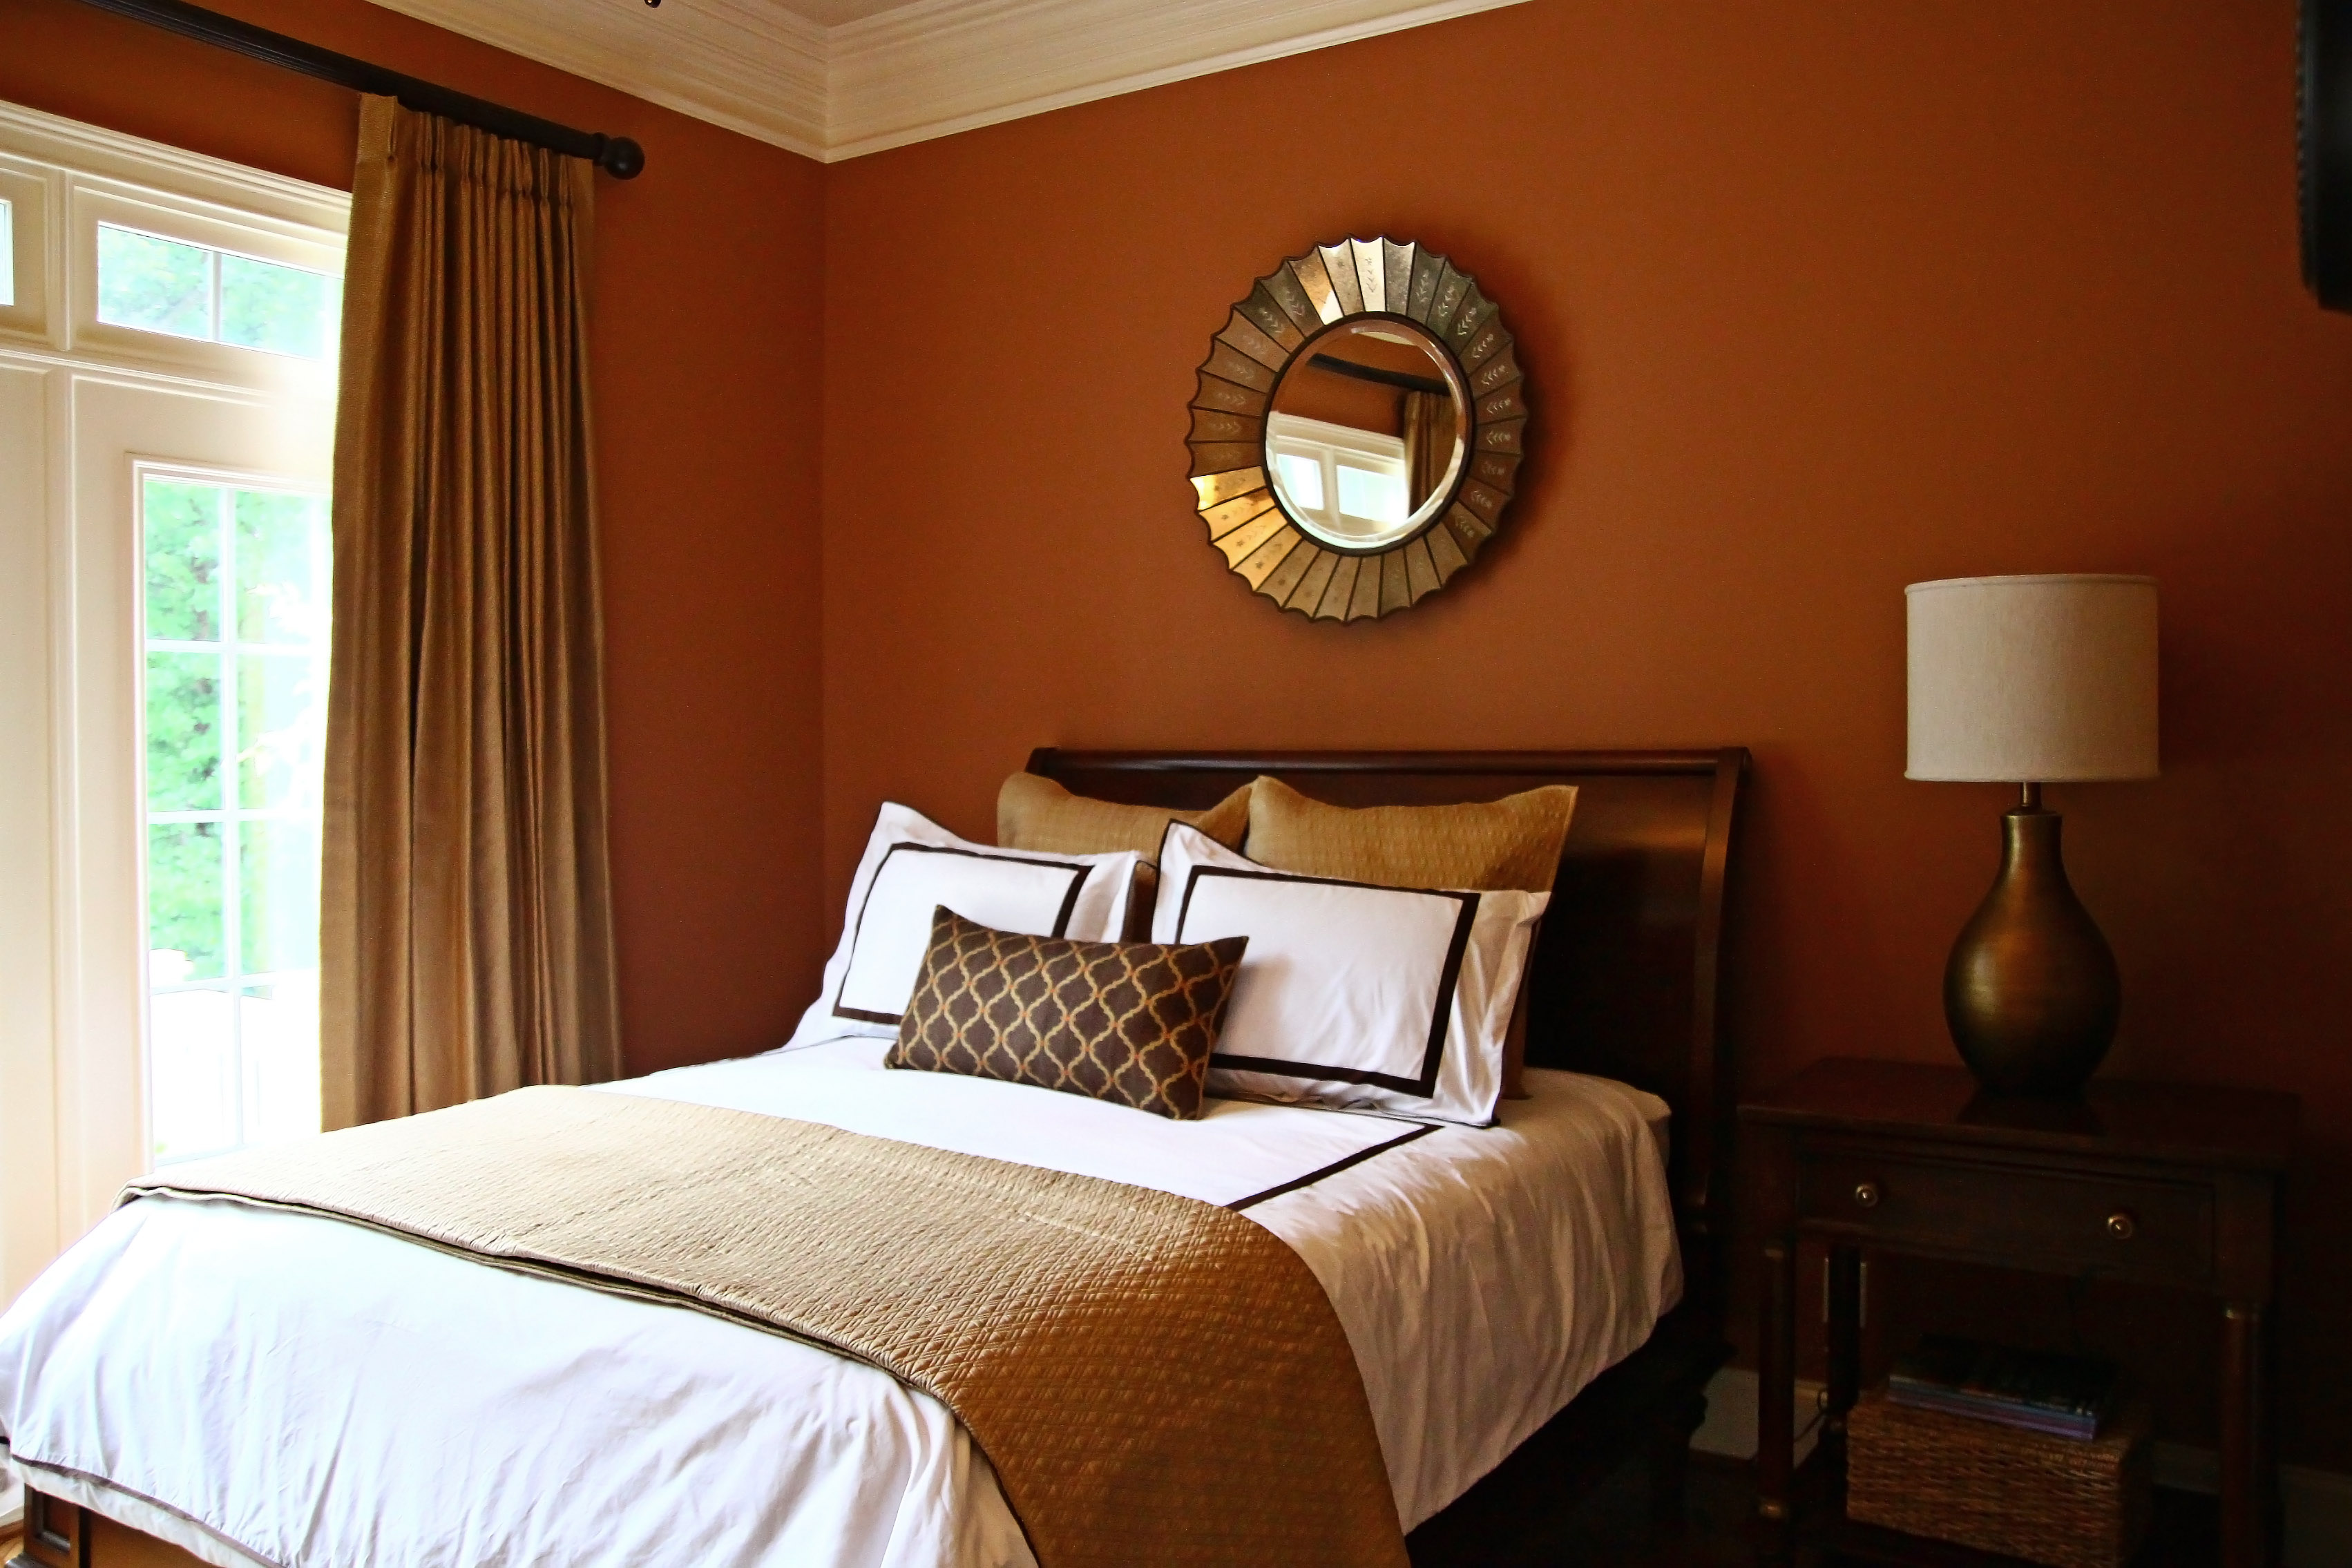 Bedroom Ideas Orange orange bedrooms